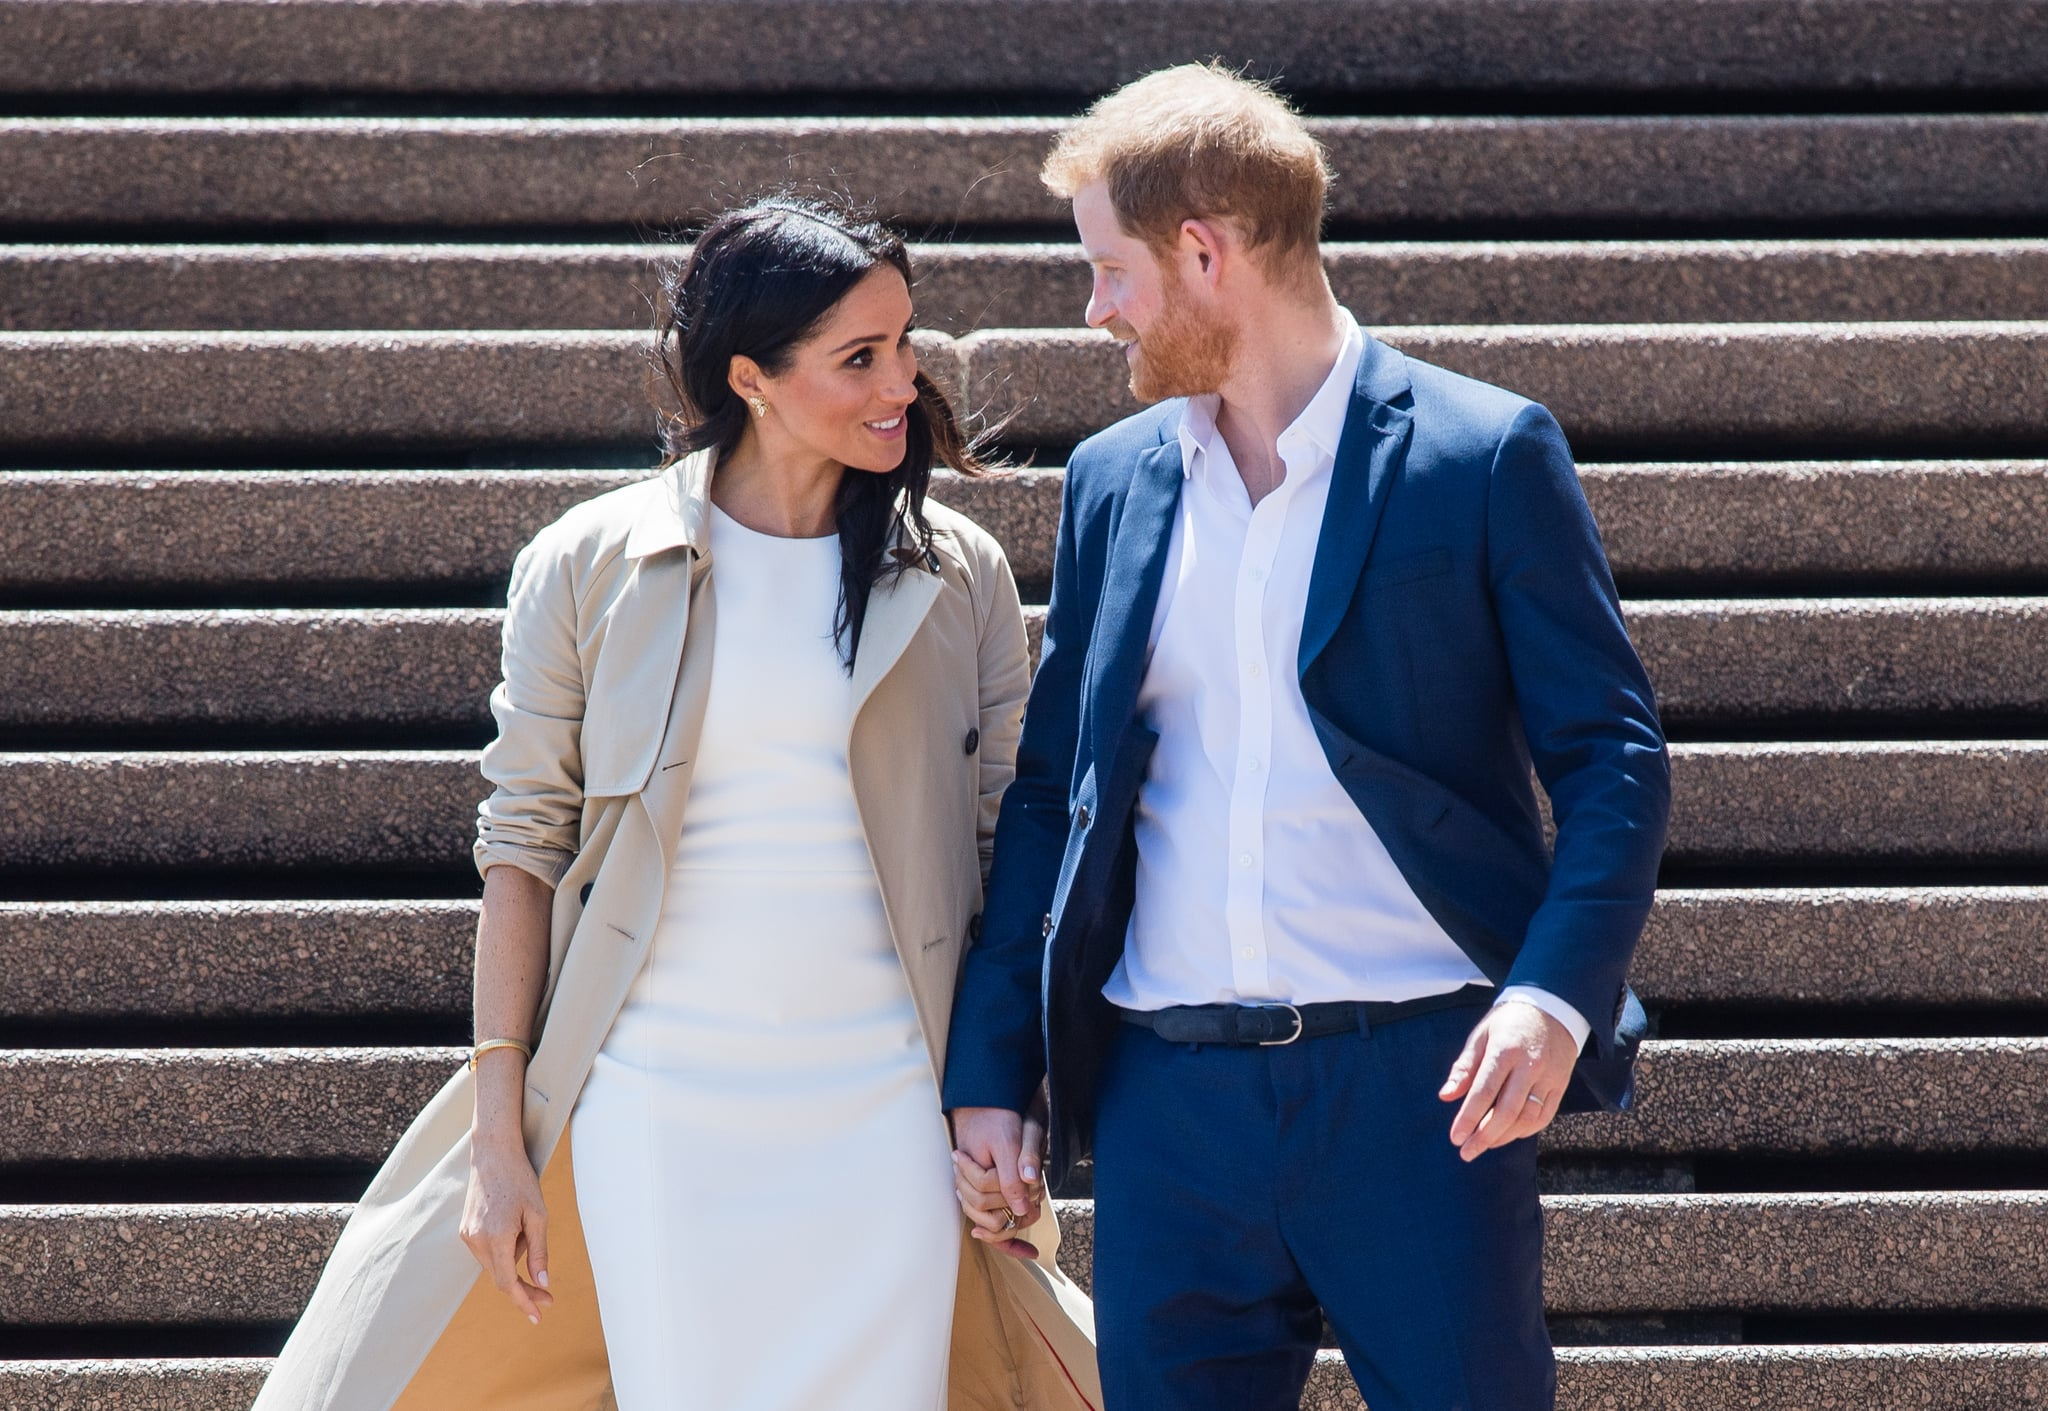 SYDNEY, AUSTRALIA - OCTOBER 16:  Meghan, Duchess of Sussex and Prince Harry, Duke of Sussex take part in a public walkabout at the Sydney Opera House on October 16, 2018 in Sydney, Australia. The Duke and Duchess of Sussex are on their official 16-day Autumn tour visiting cities in Australia, Fiji, Tonga and New Zealand.  (Photo by Samir Hussein/Samir Hussein/WireImage)